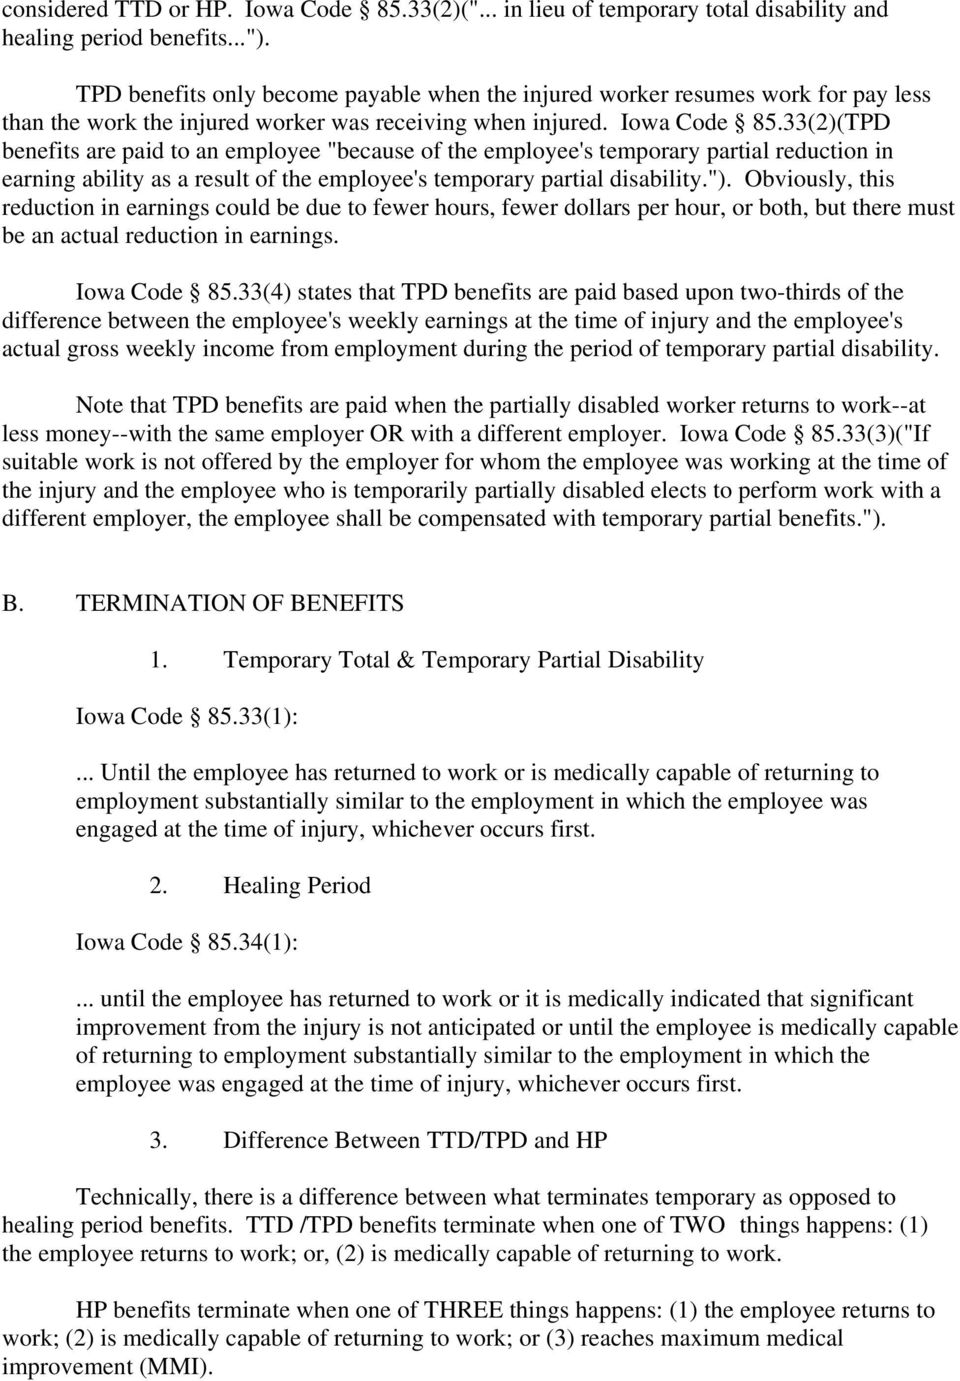 "33(2)(TPD benefits are paid to an employee ""because of the employee's temporary partial reduction in earning ability as a result of the employee's temporary partial disability."")."